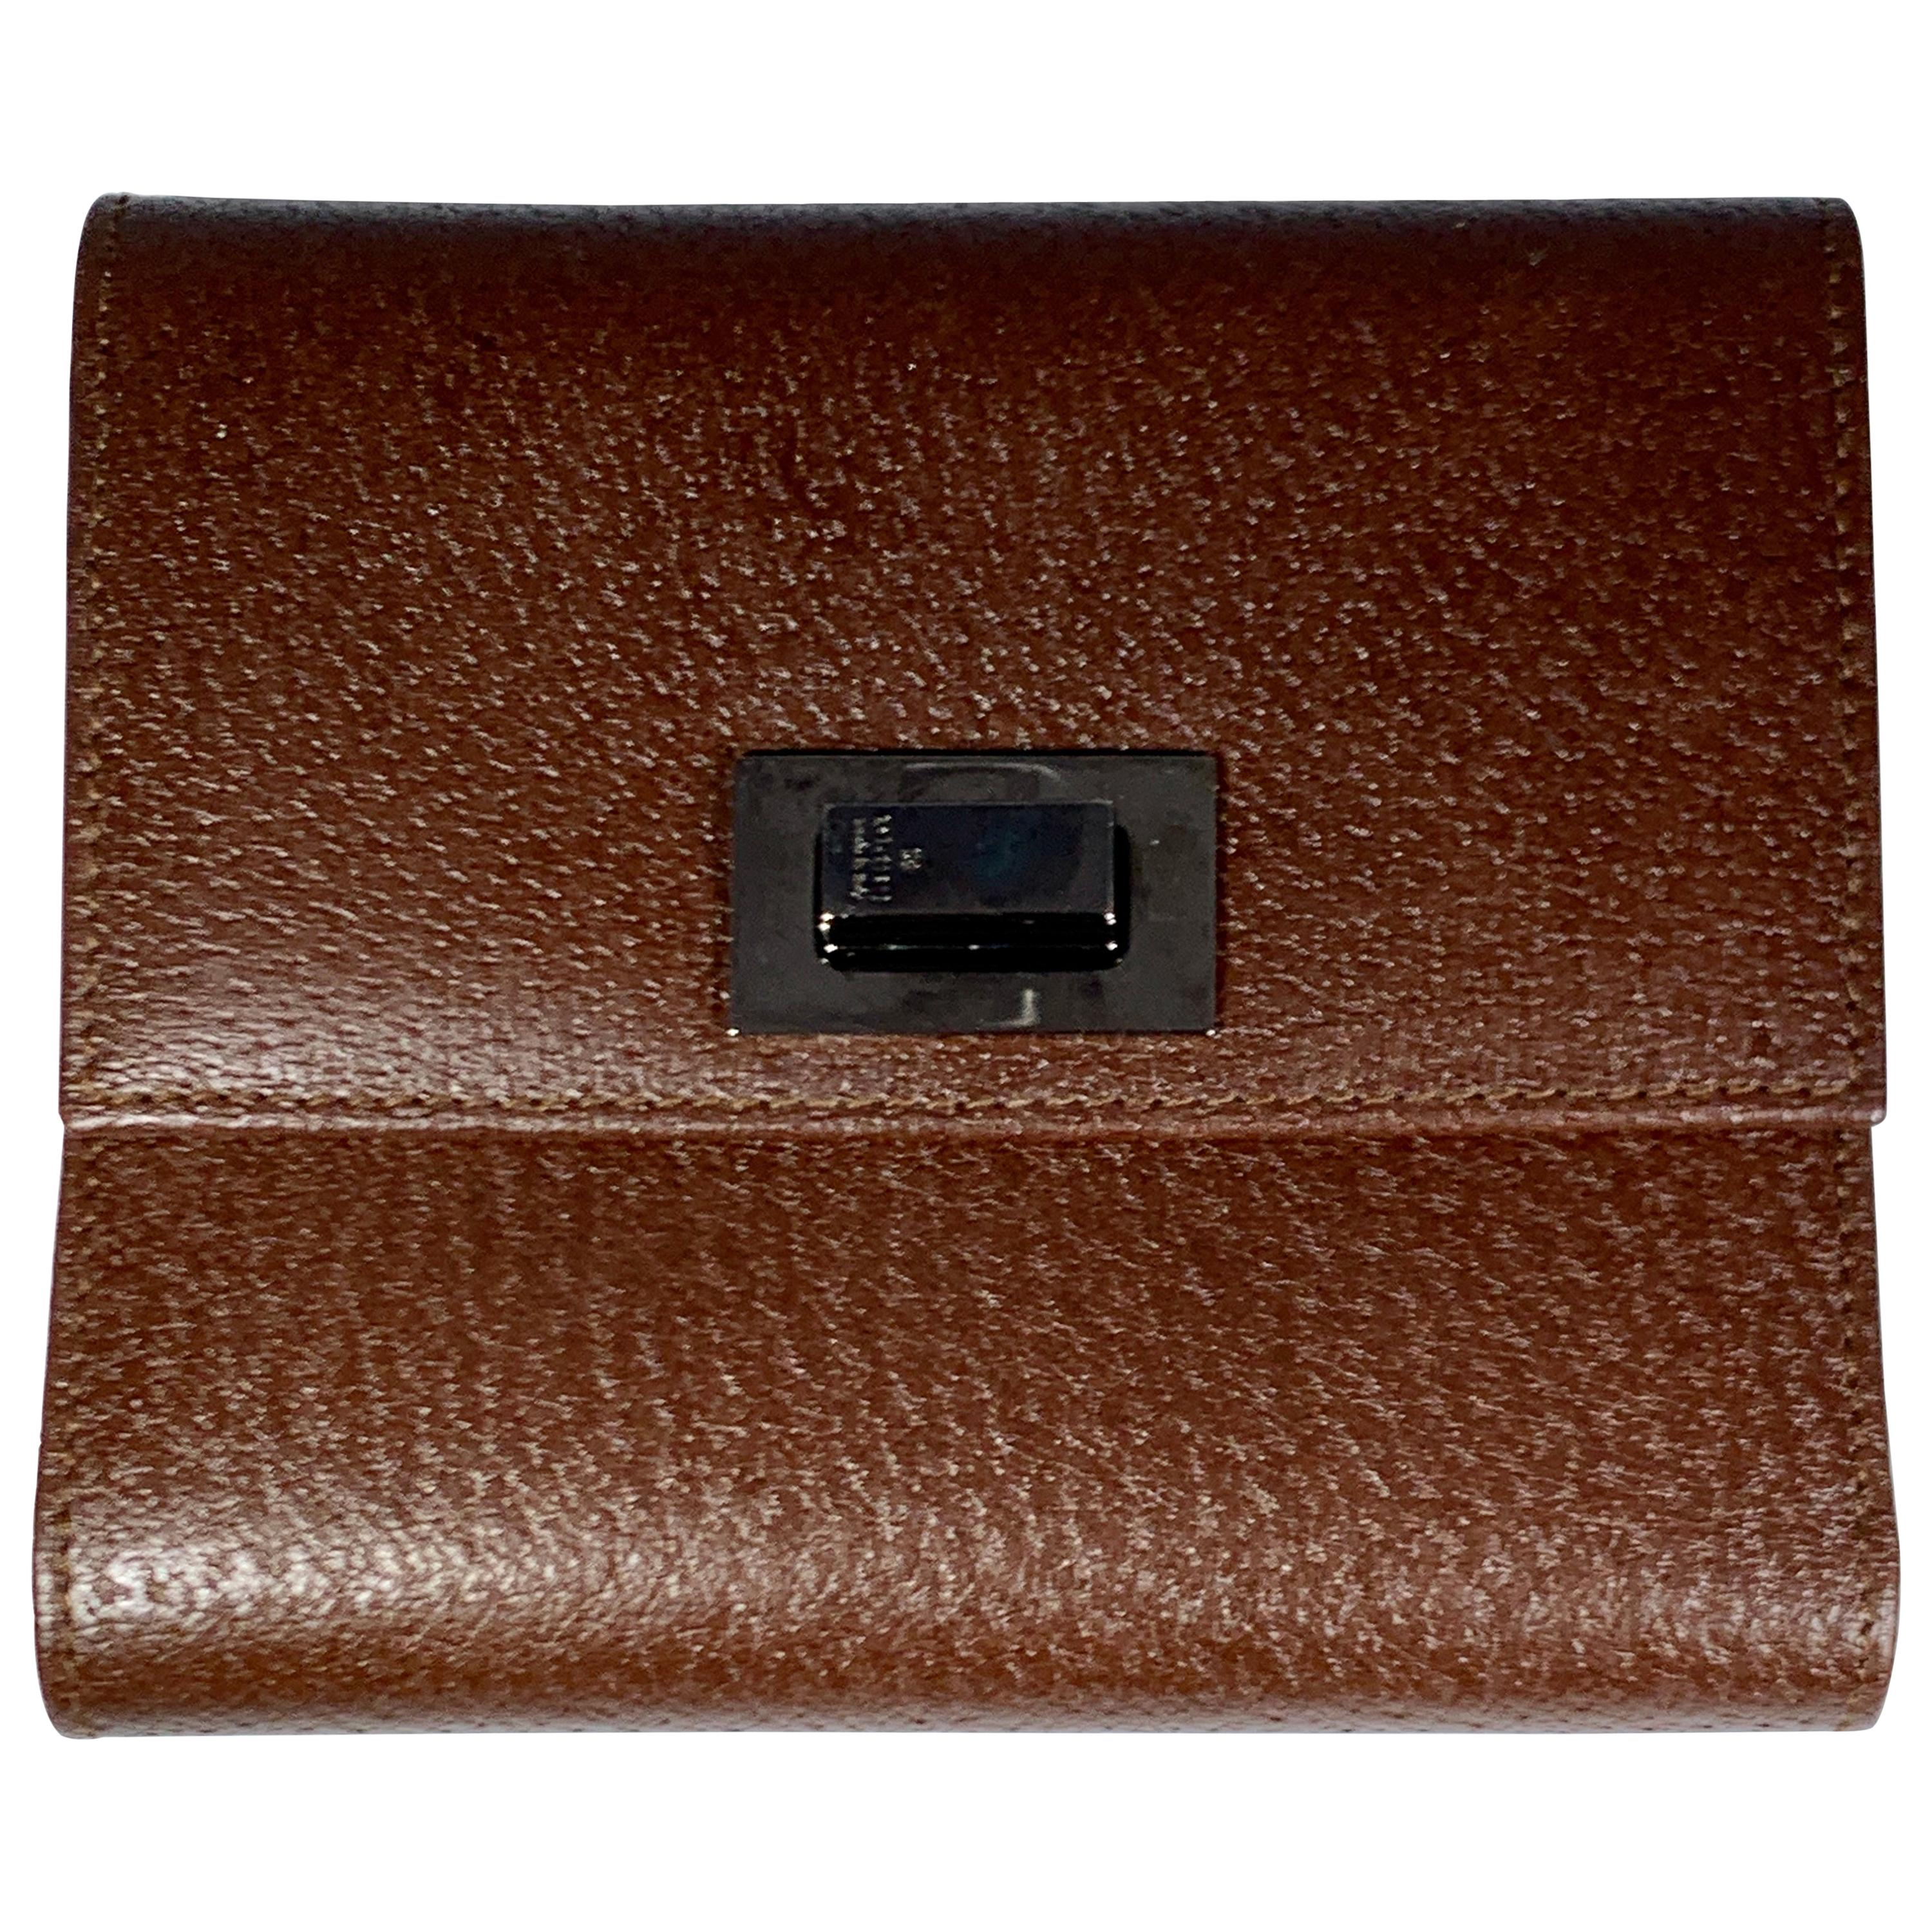 GUCCI   Wallet Browns Leather 1210703 Made in Italy Excellent Condition